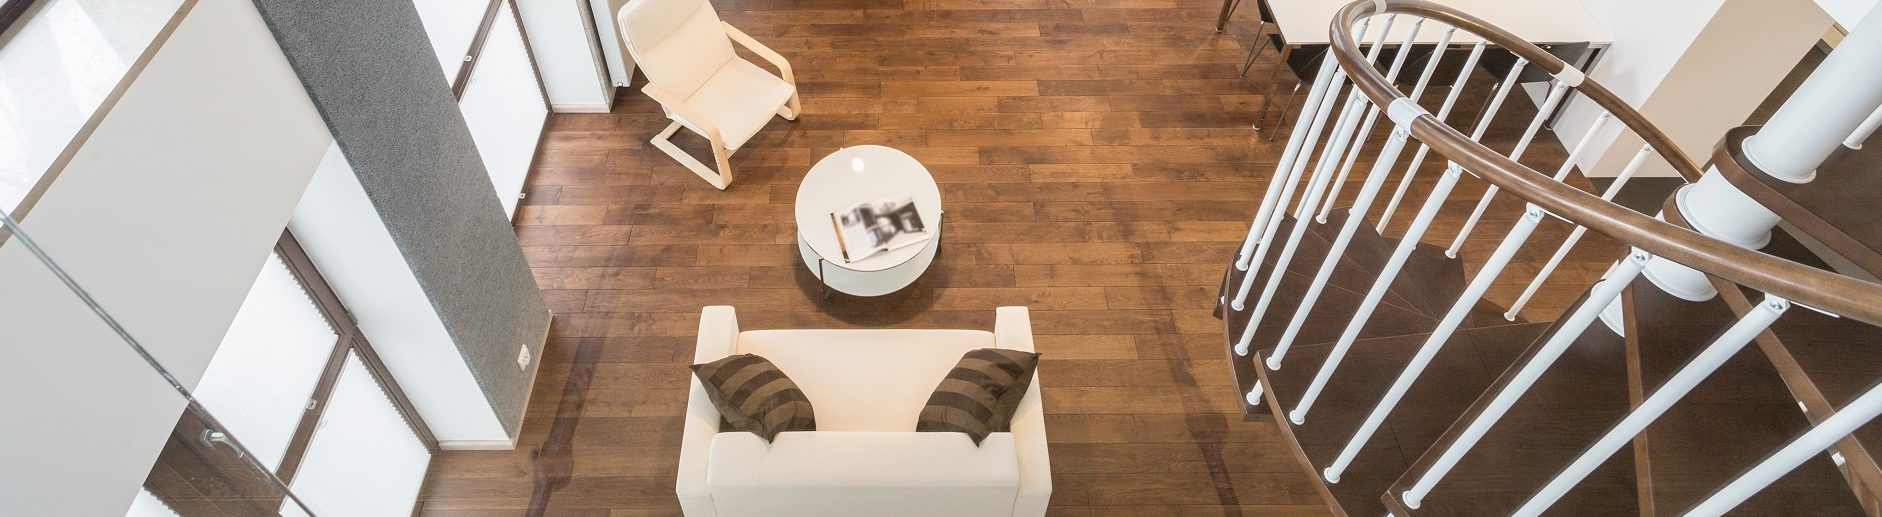 Timber Floors- What to Expect